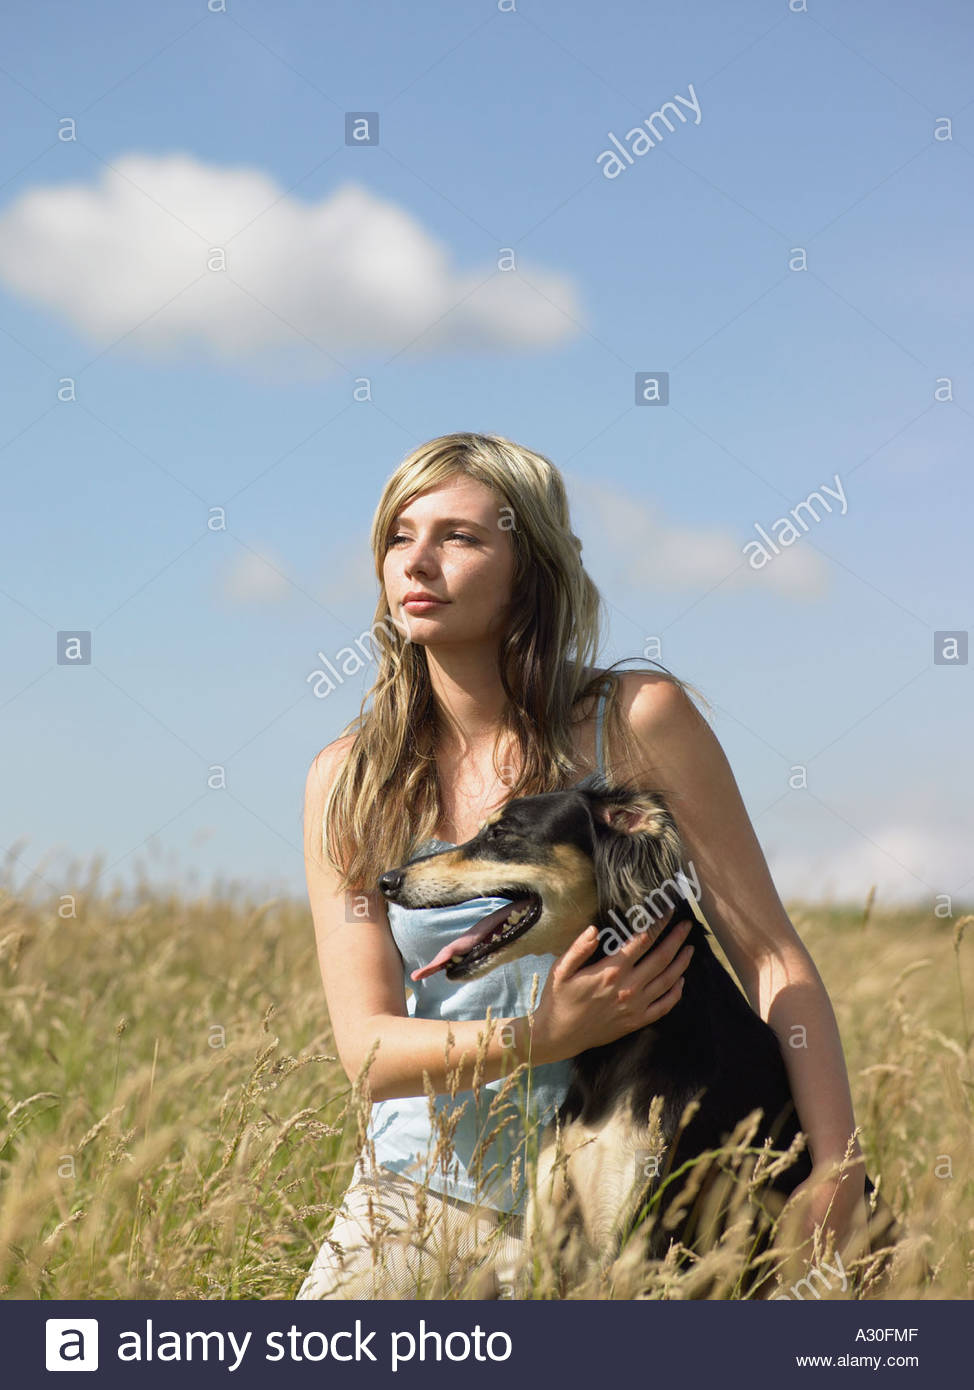 Young woman with dog in field - Stock Image